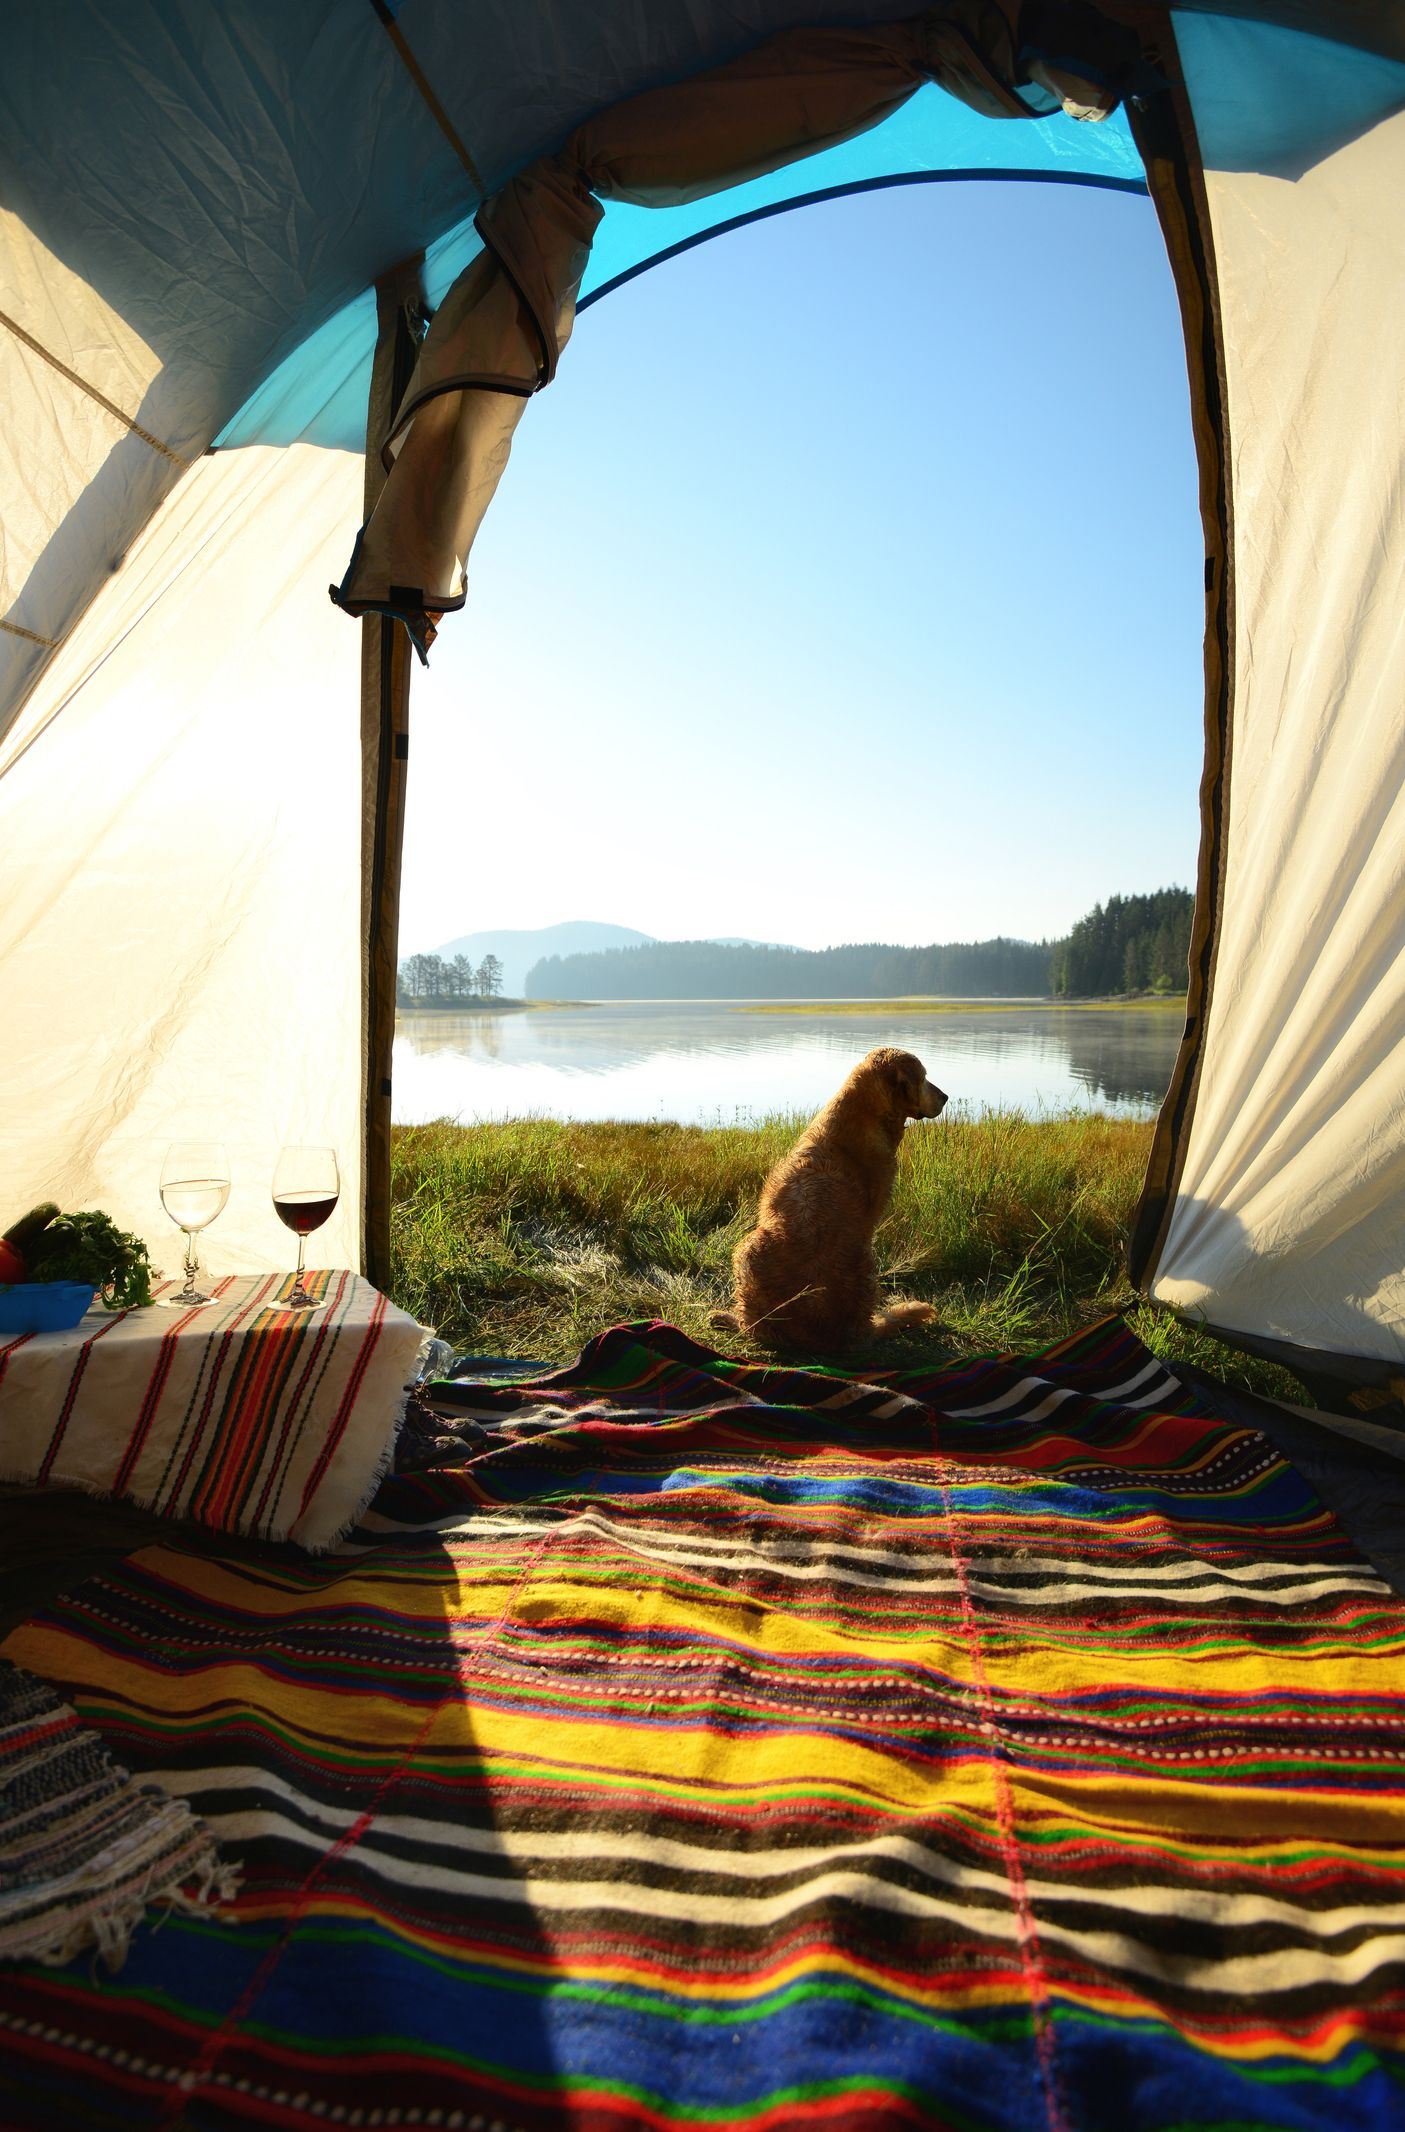 20 Camping With Dogs Tips and Ideas - Best Dog Camping Gear